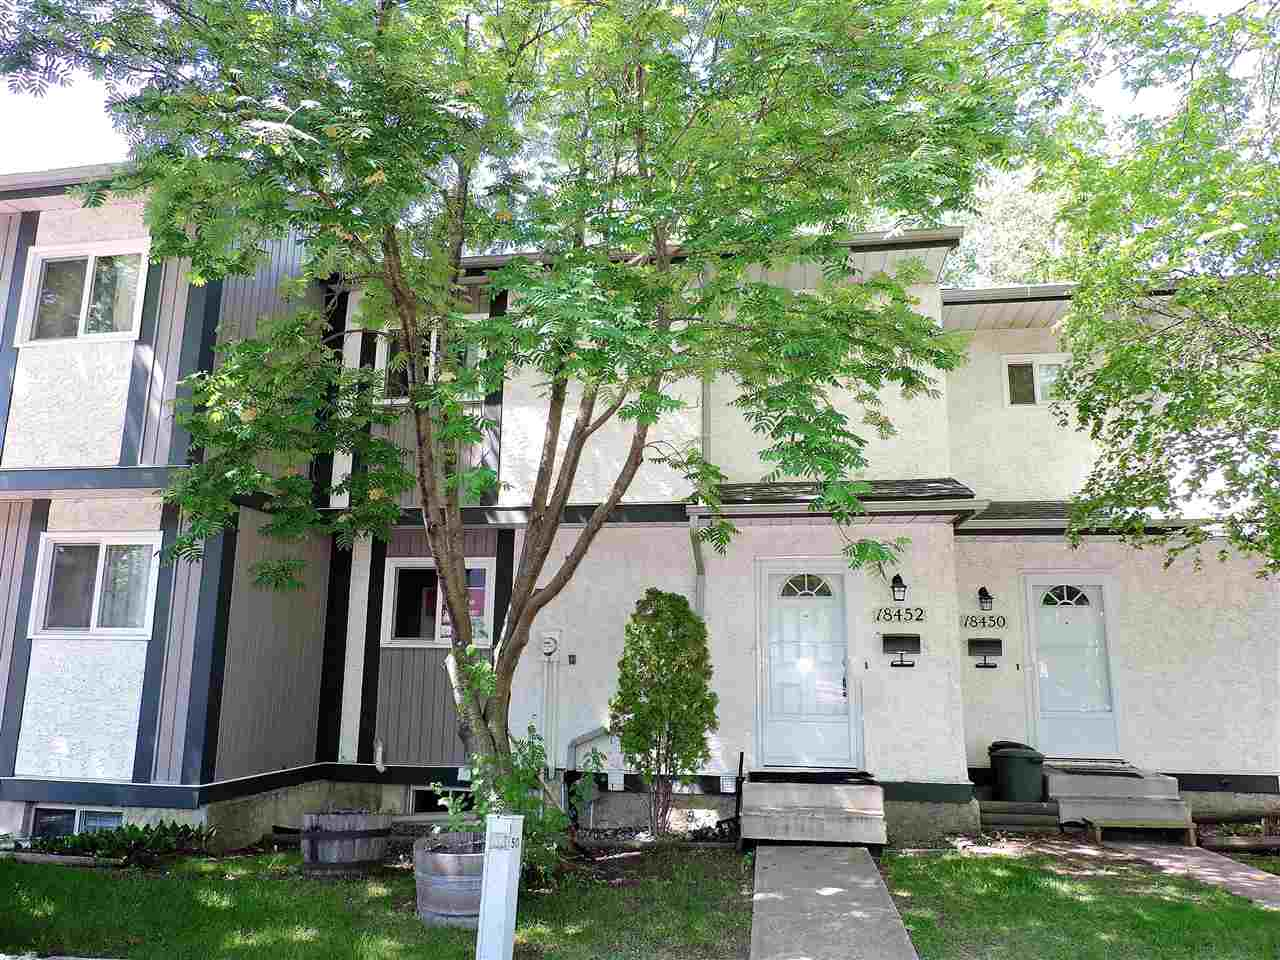 Great west end location in the Ormsby neighbourhood. 2 storey townhouse in Kylewood Court.  Backs onto walking trail.  3 bedrooms and 2 baths. Laminate flooring throughout the main floor.  Large living room with patio doors to back yard. Fully finished basement. Brand new carpet in the basement & on basement stairs installed October 2017.  Walking distance to Ormsby Elementary and S. Bruce Smith Junior High.  New high efficiency furnace in September 2016.  Well managed complex.